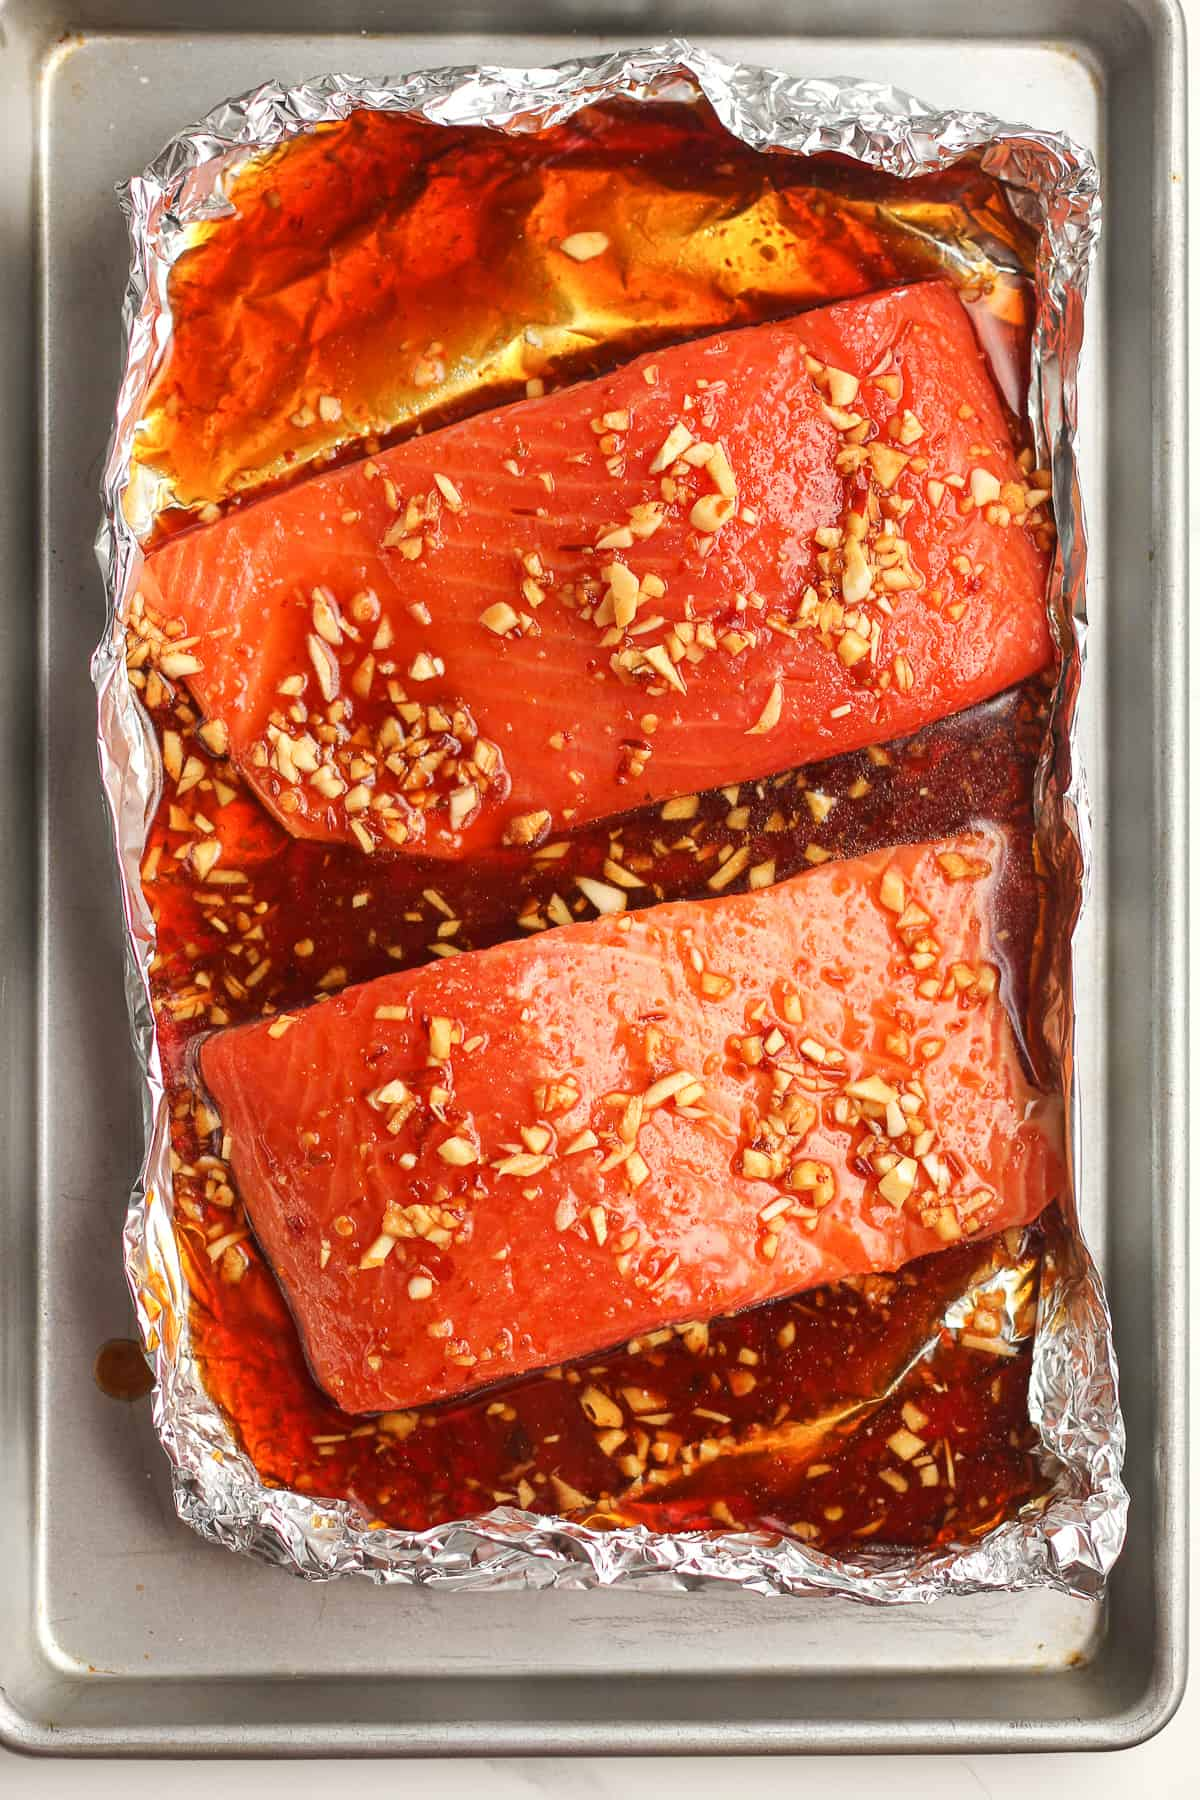 The raw salmon in foil before baking.